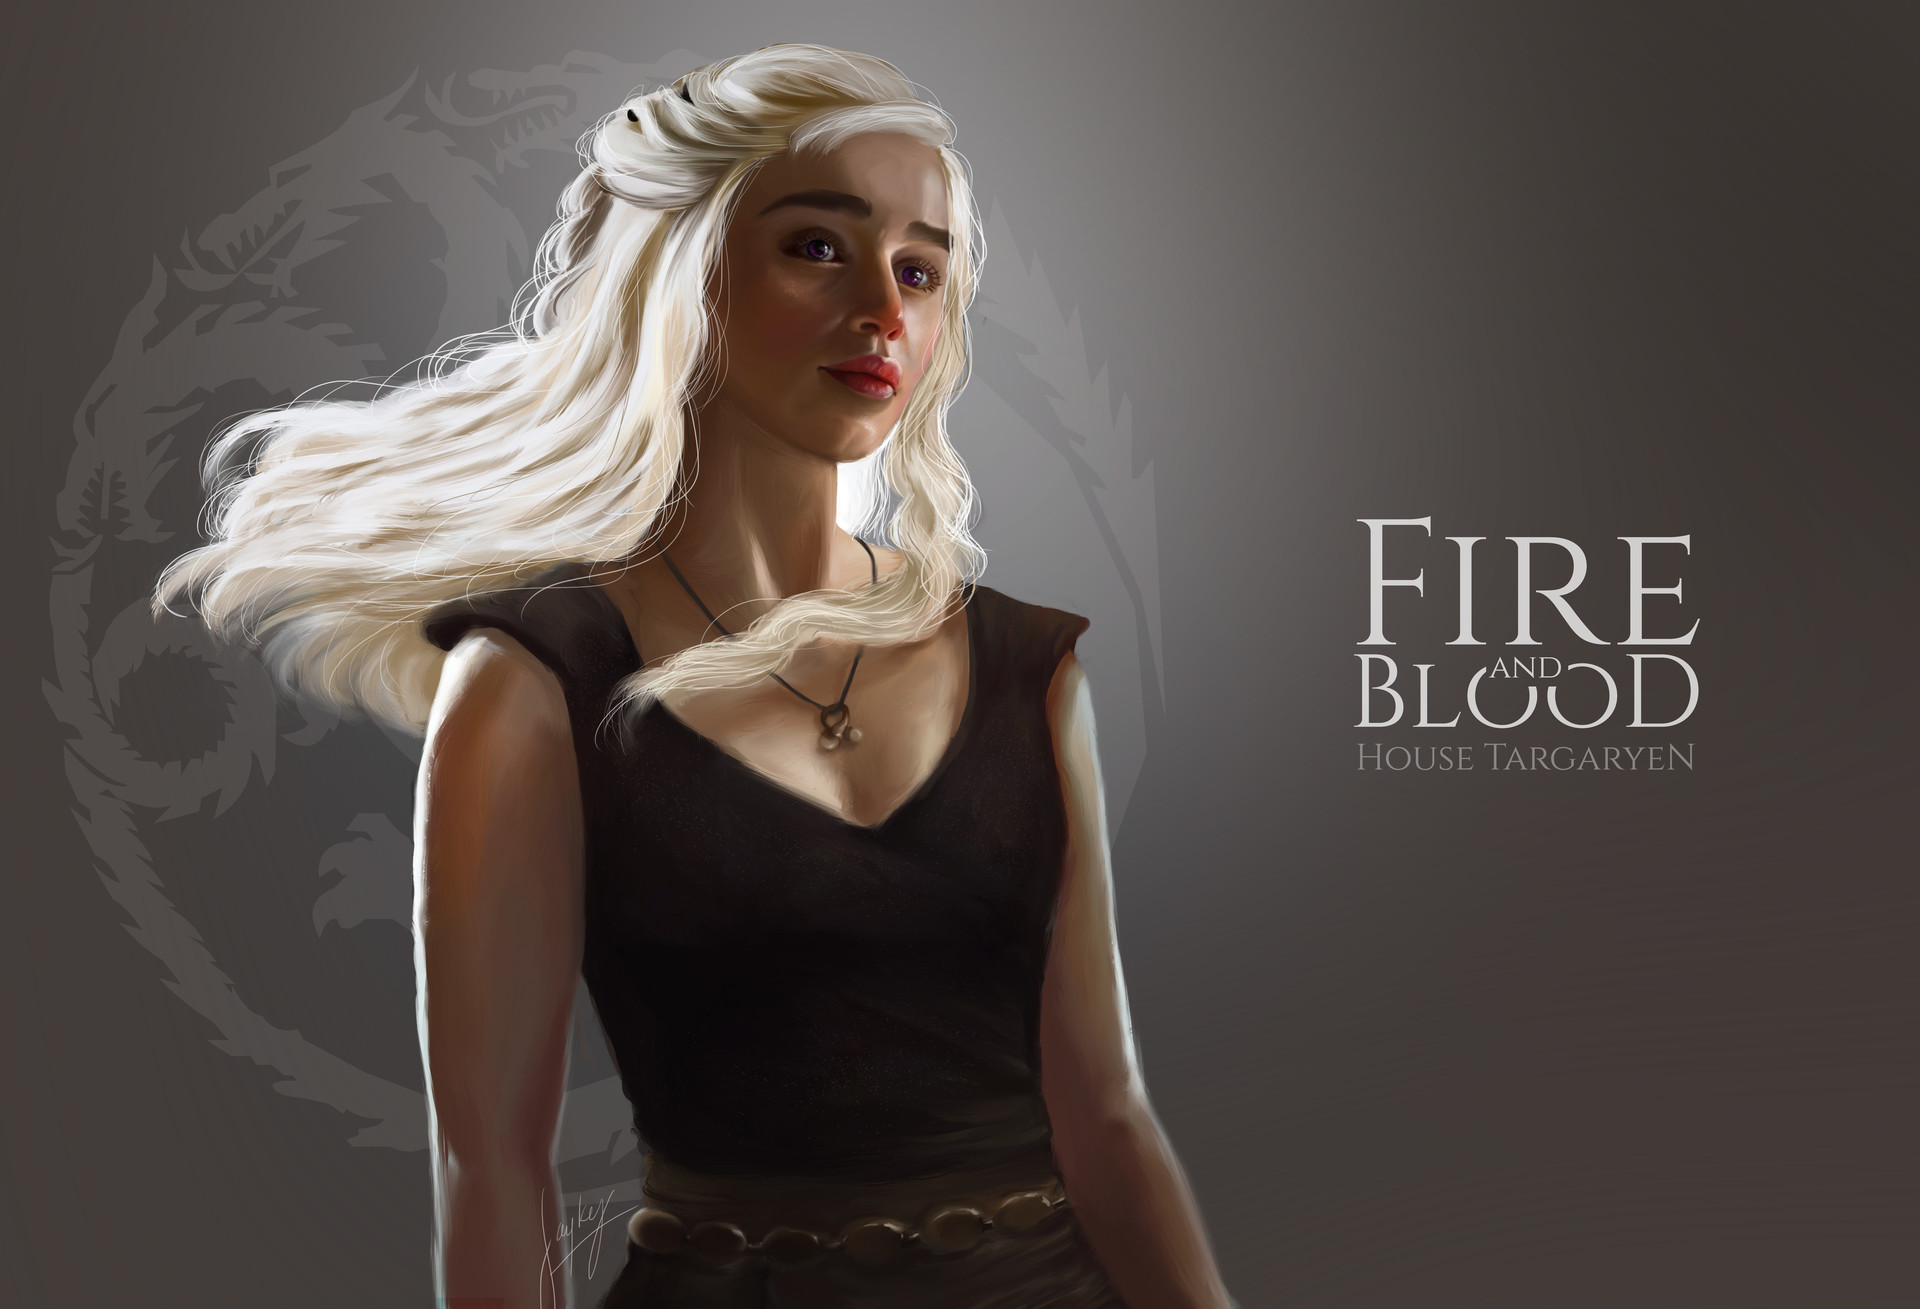 1920x1080 Wallpaper Fantasy Girl Daenerys Targaryen Fan Art Hd Tv Shows 4k Wallpapers